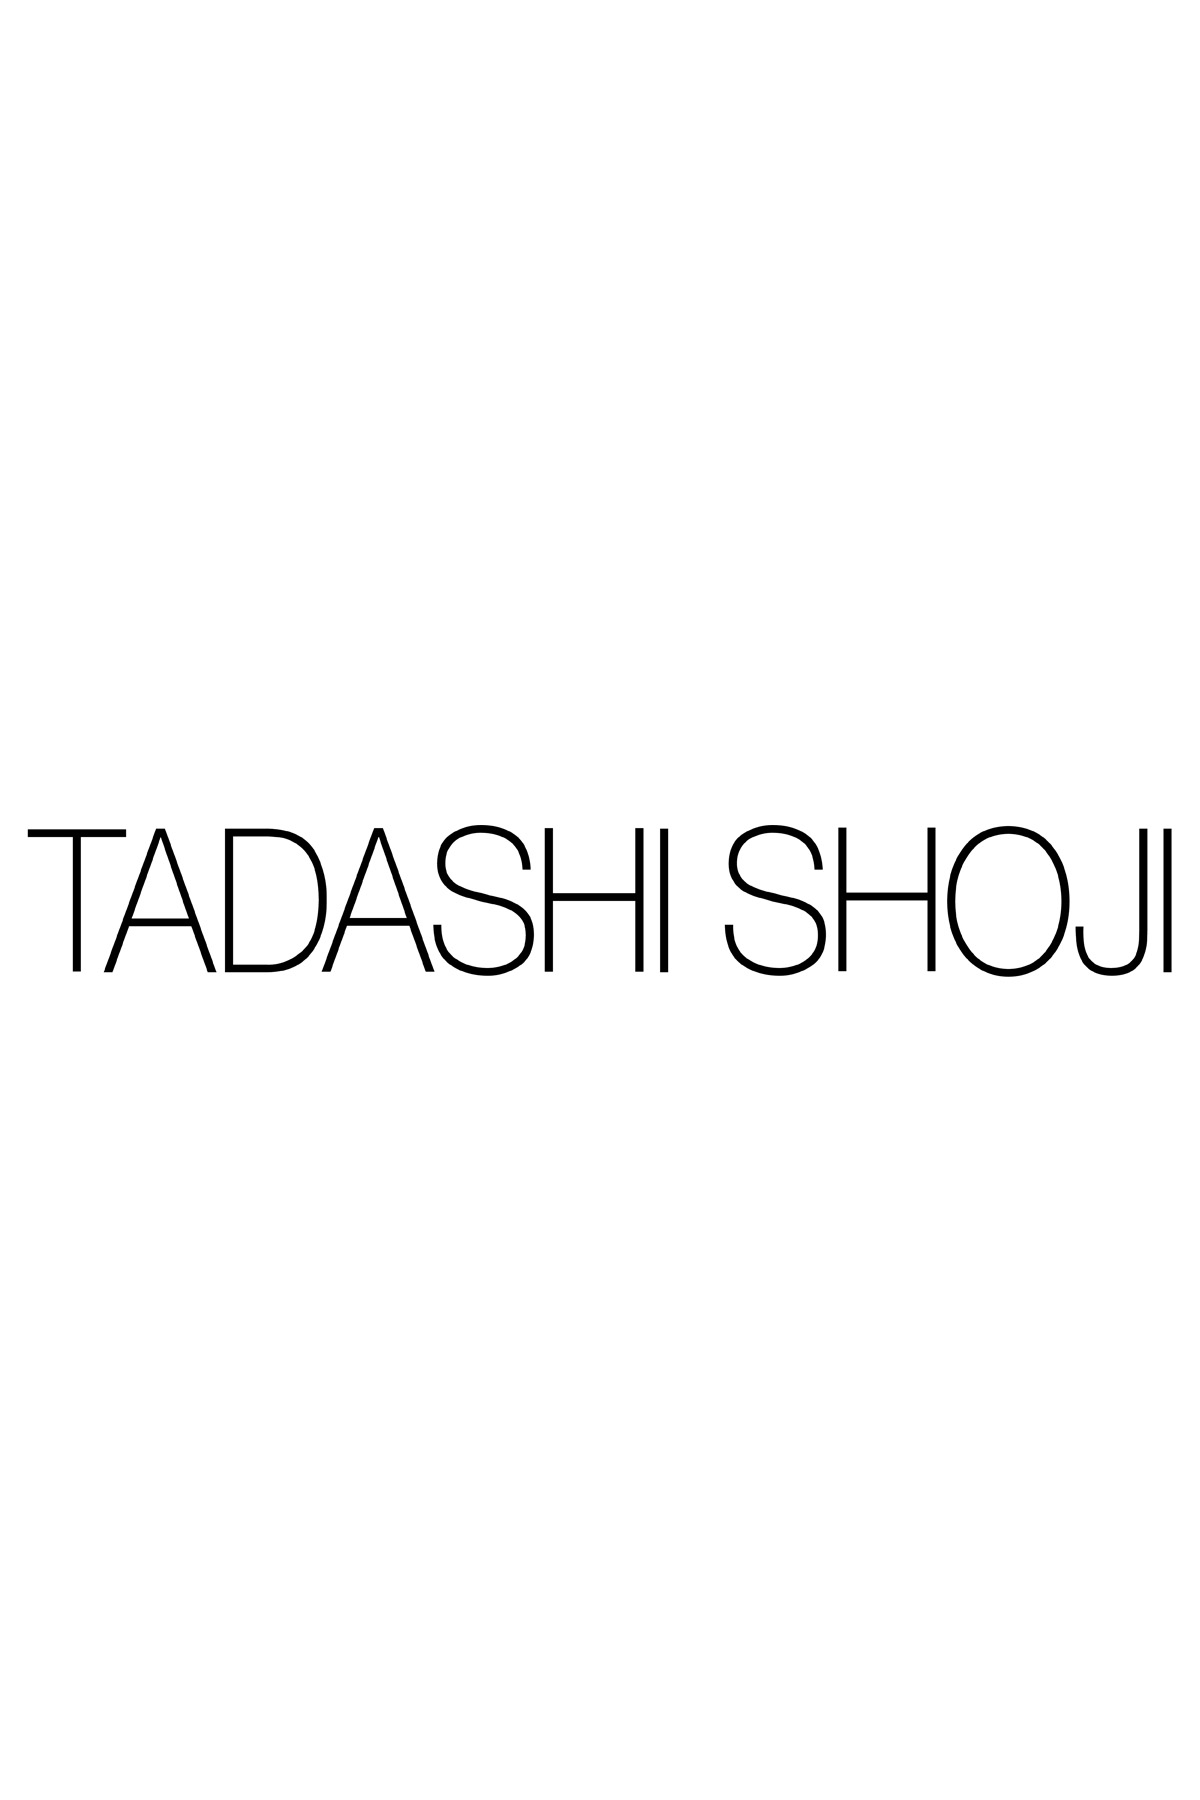 Tadashi Shoji - Corded Embroidery on Tull Pintuck Jersey Boatneck Gown - Detail